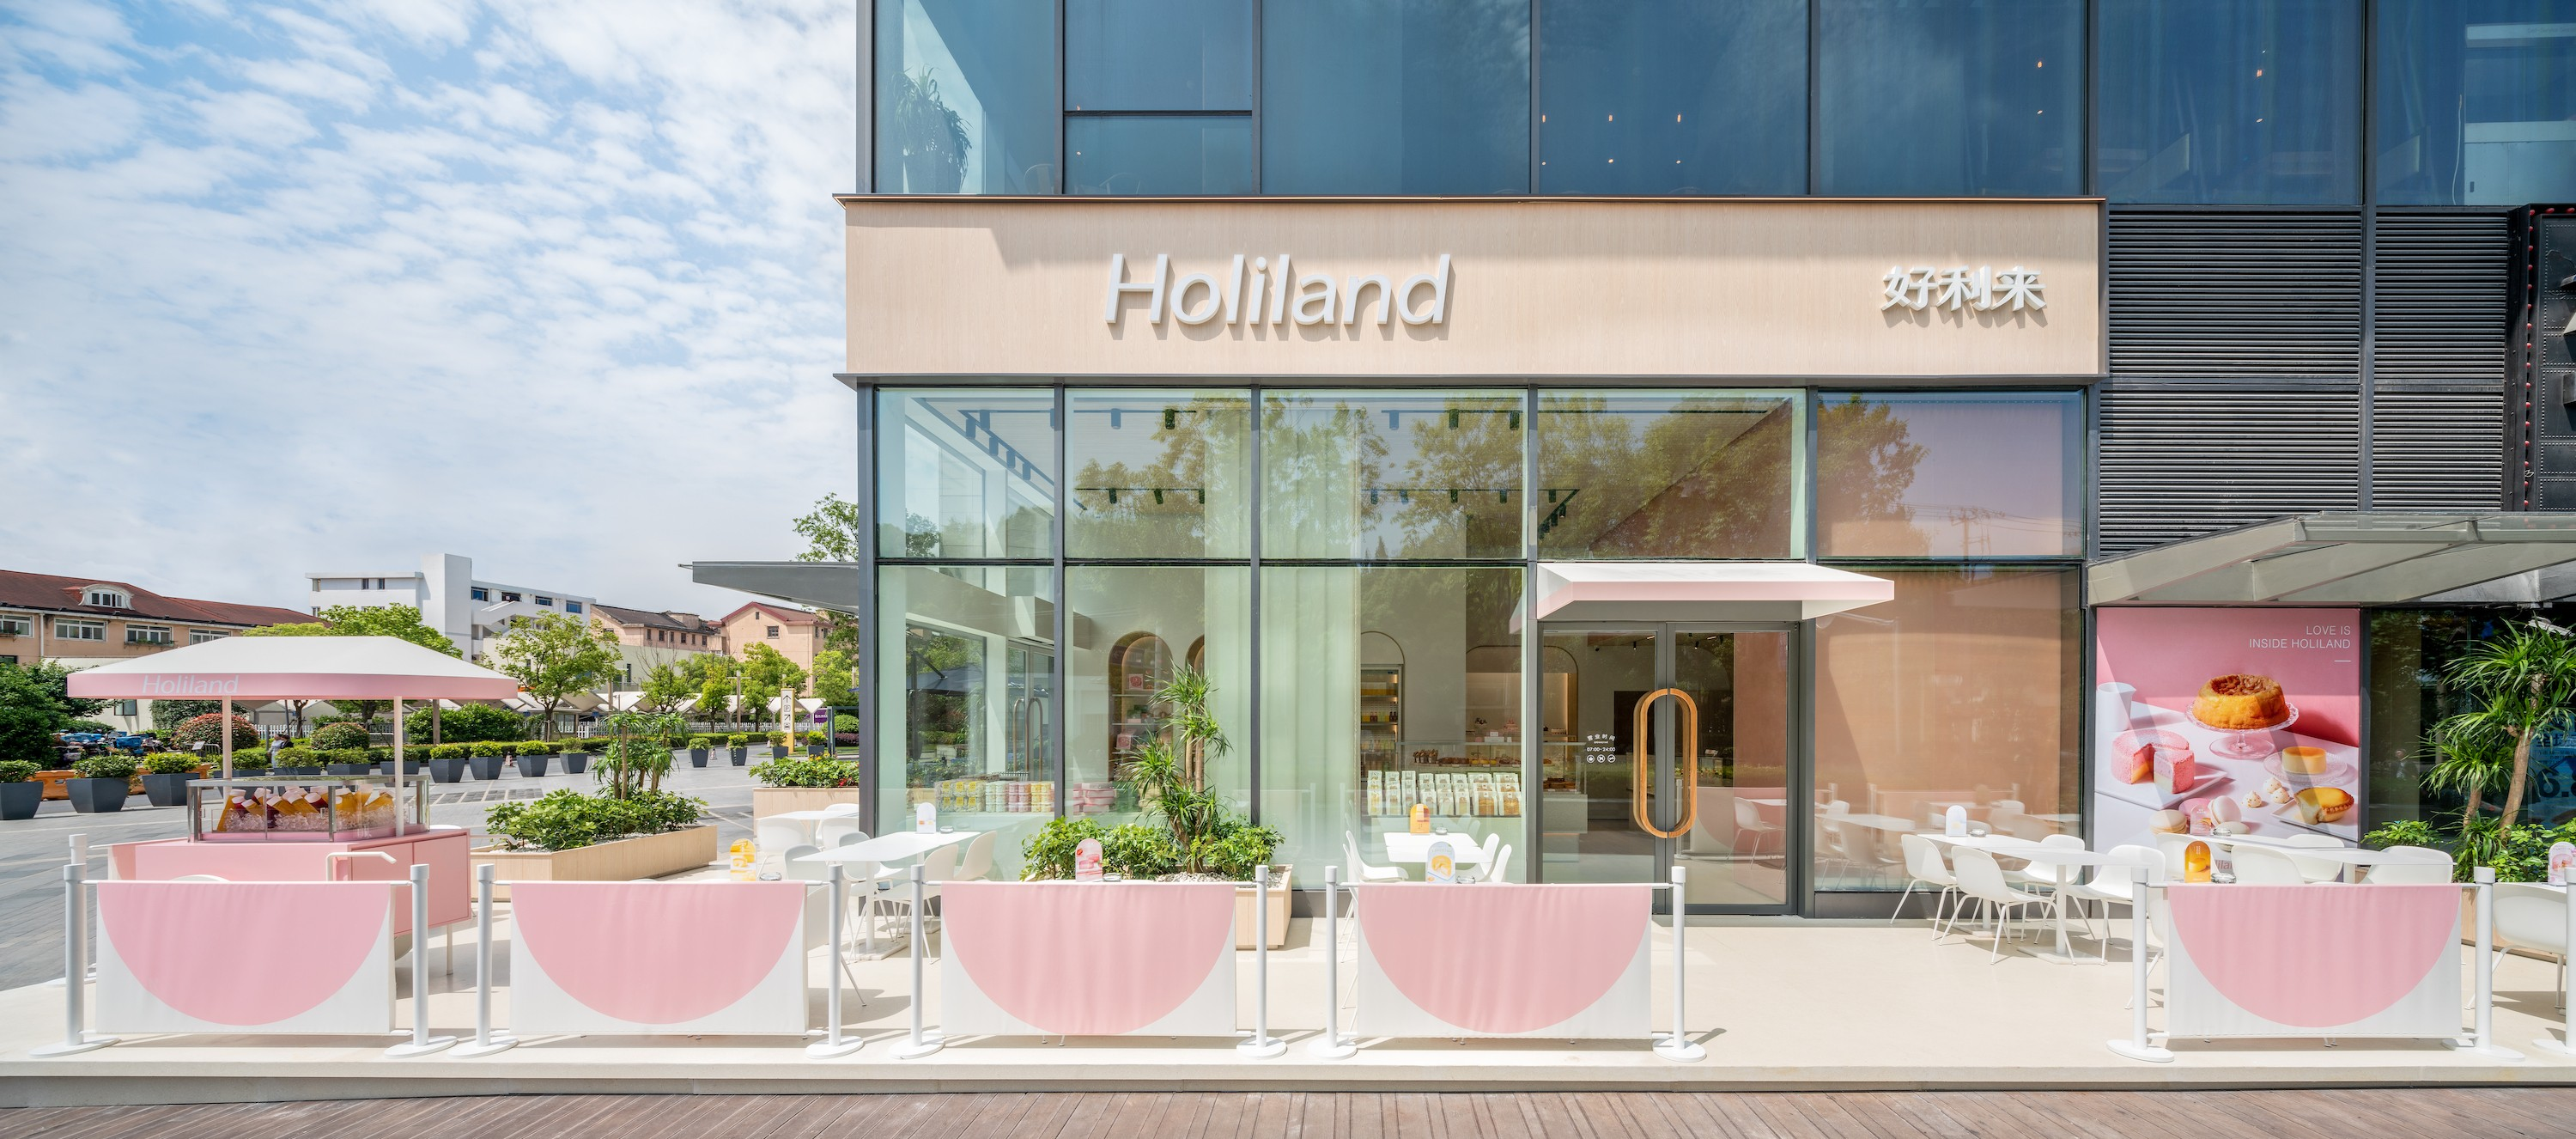 Holiland Patisserie | Universal Design Studio